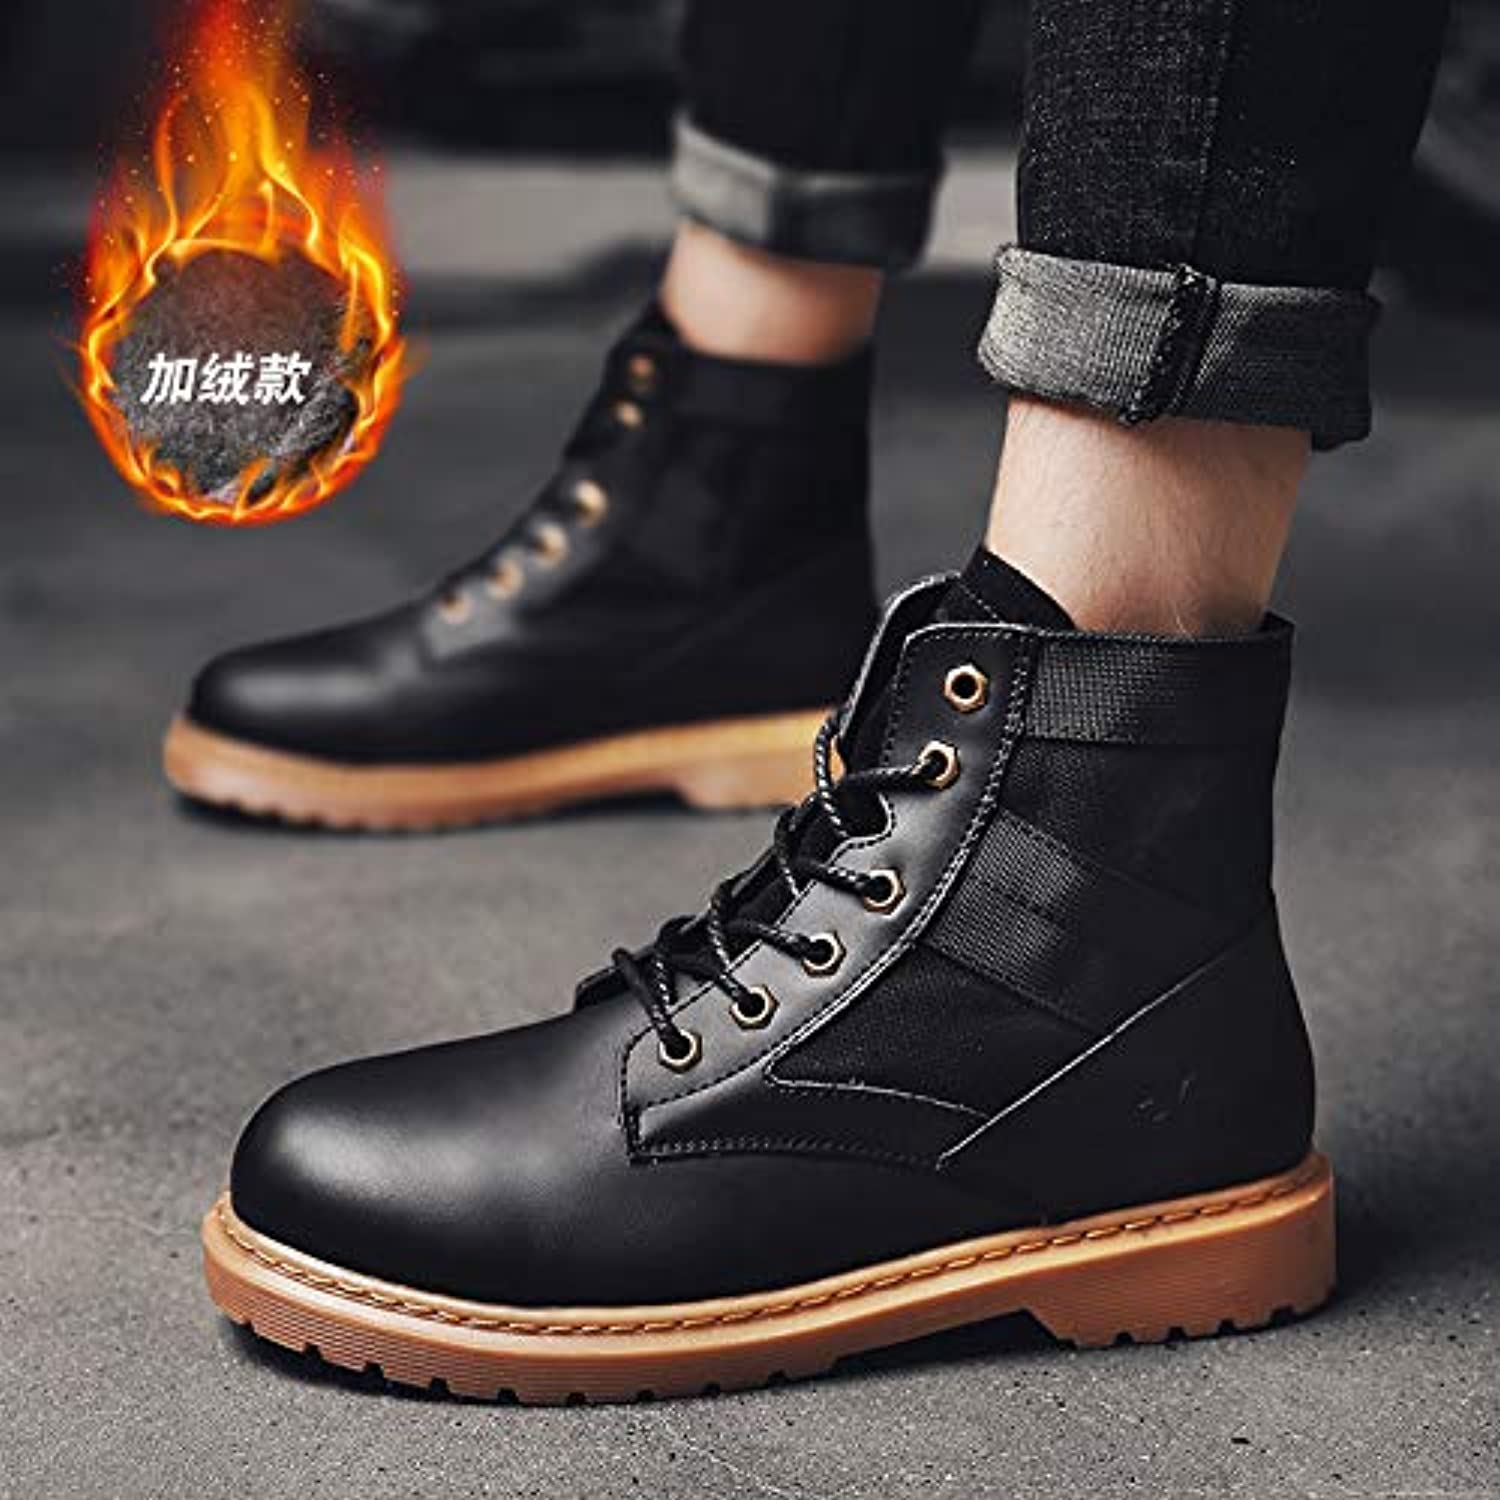 LOVDRAM Men'S shoes Martin Boots Men'S Fashion To Help Short Boots Autumn And Winter Wild Fashion High To Help Military Boots Tooling Men'S shoes Plus Cotton To Keep Warm